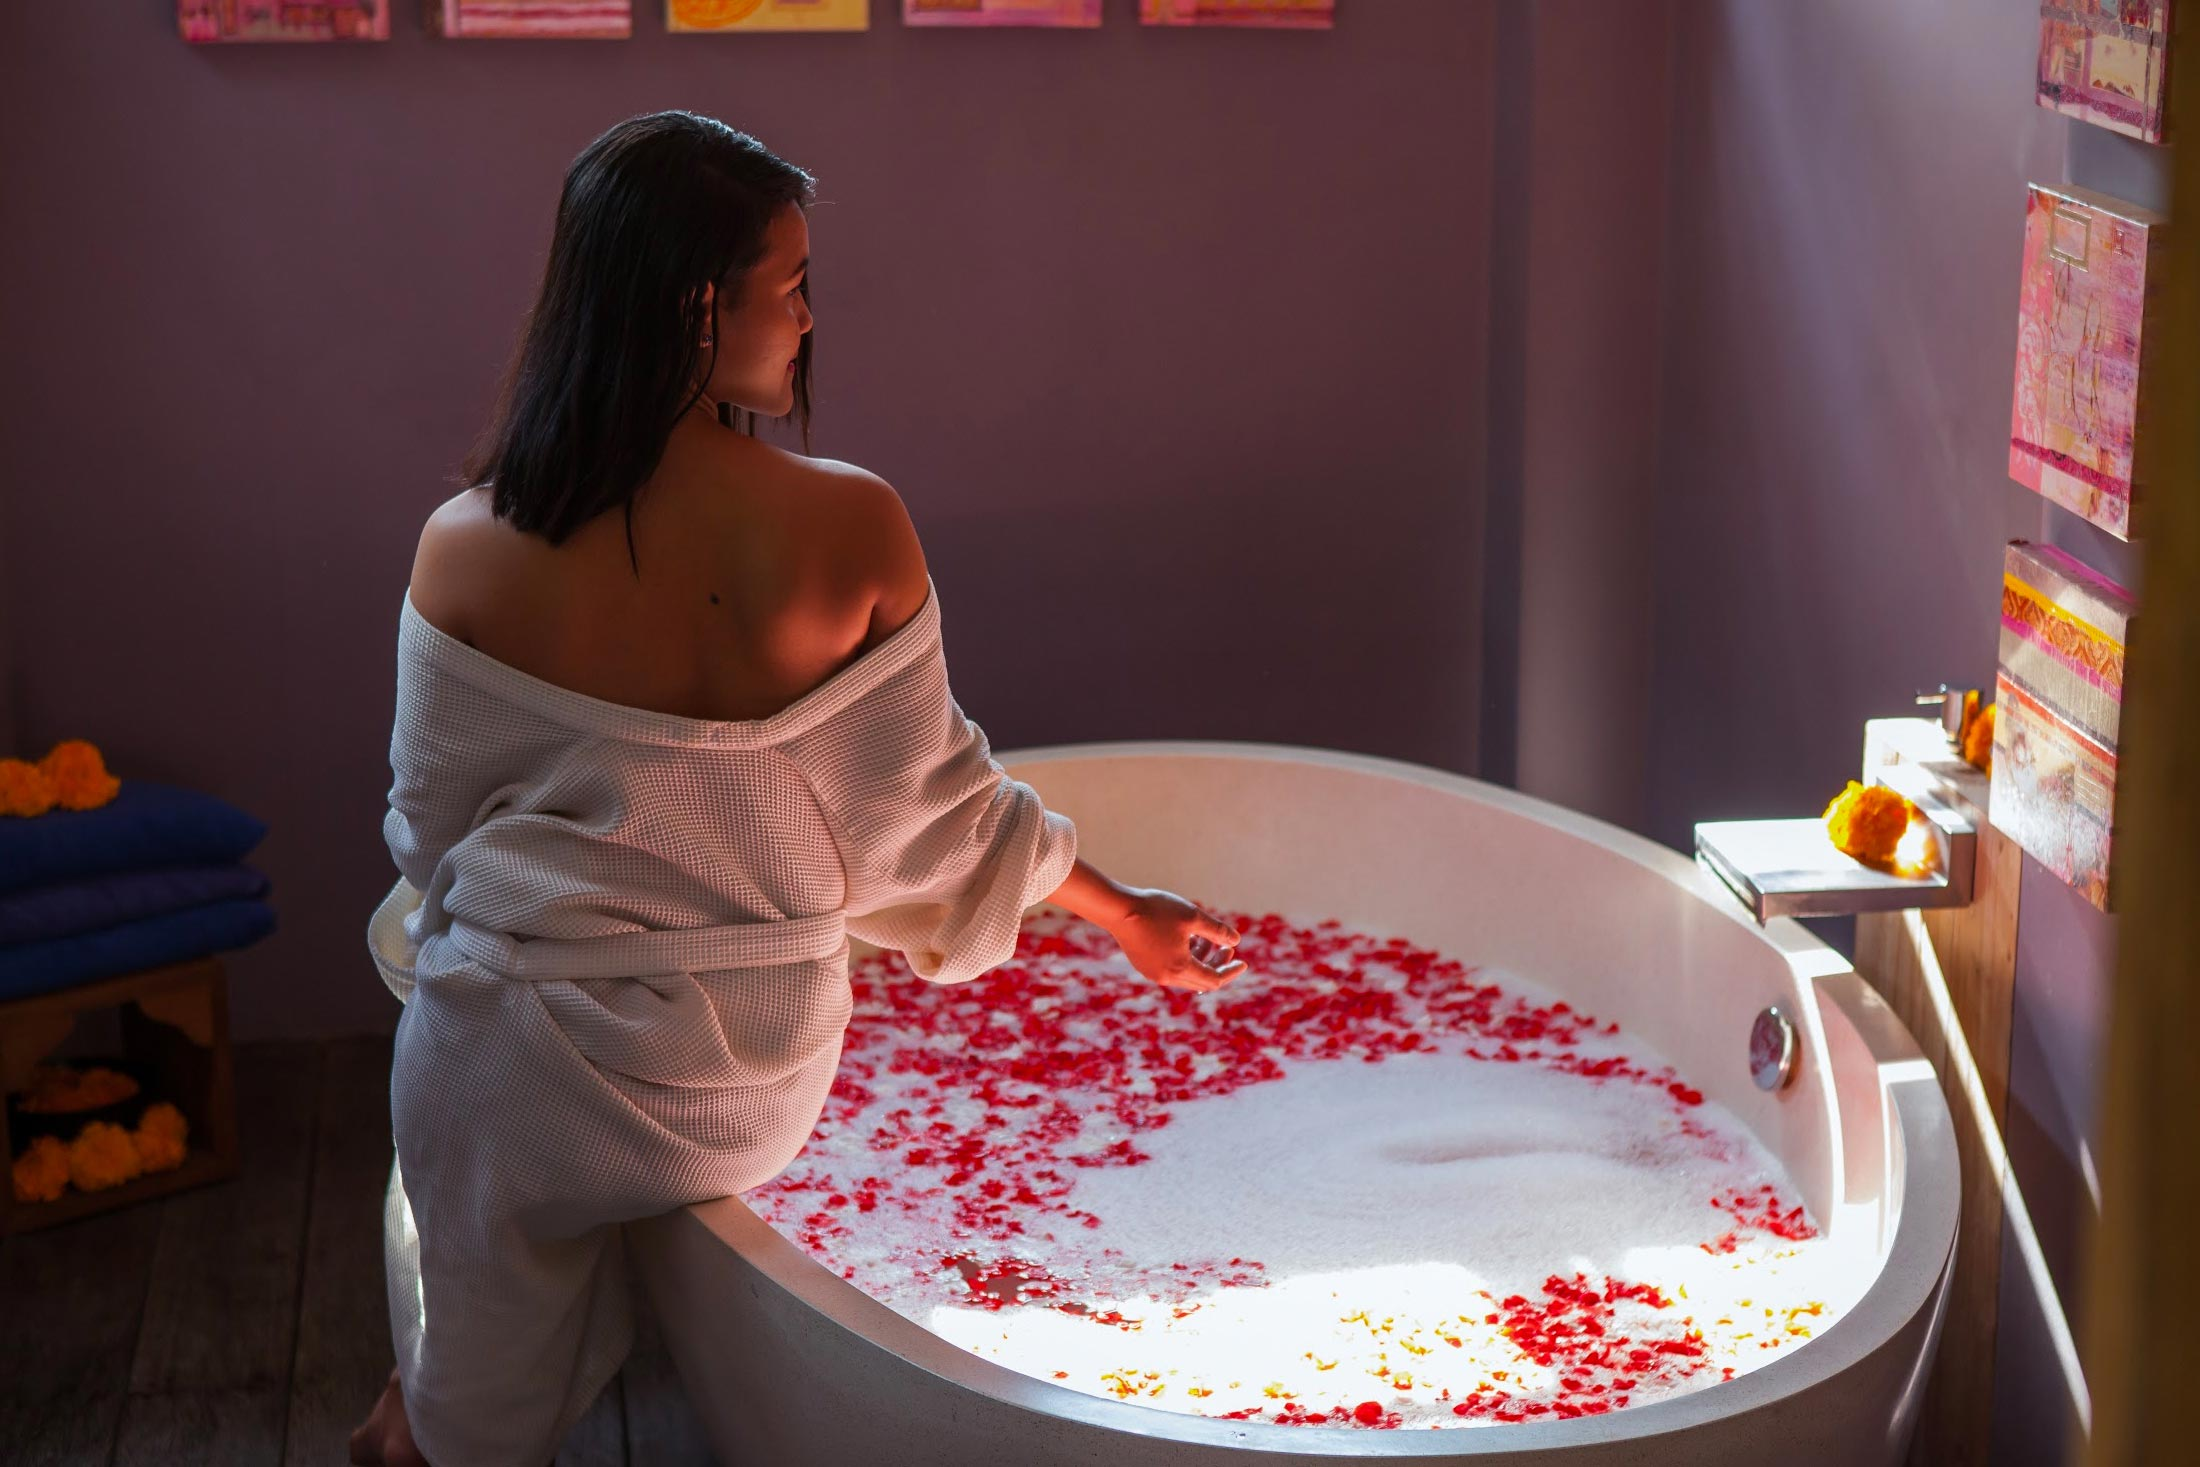 RECEIVE - Receive everyday in the onsite spa, five treatments are included in your package.